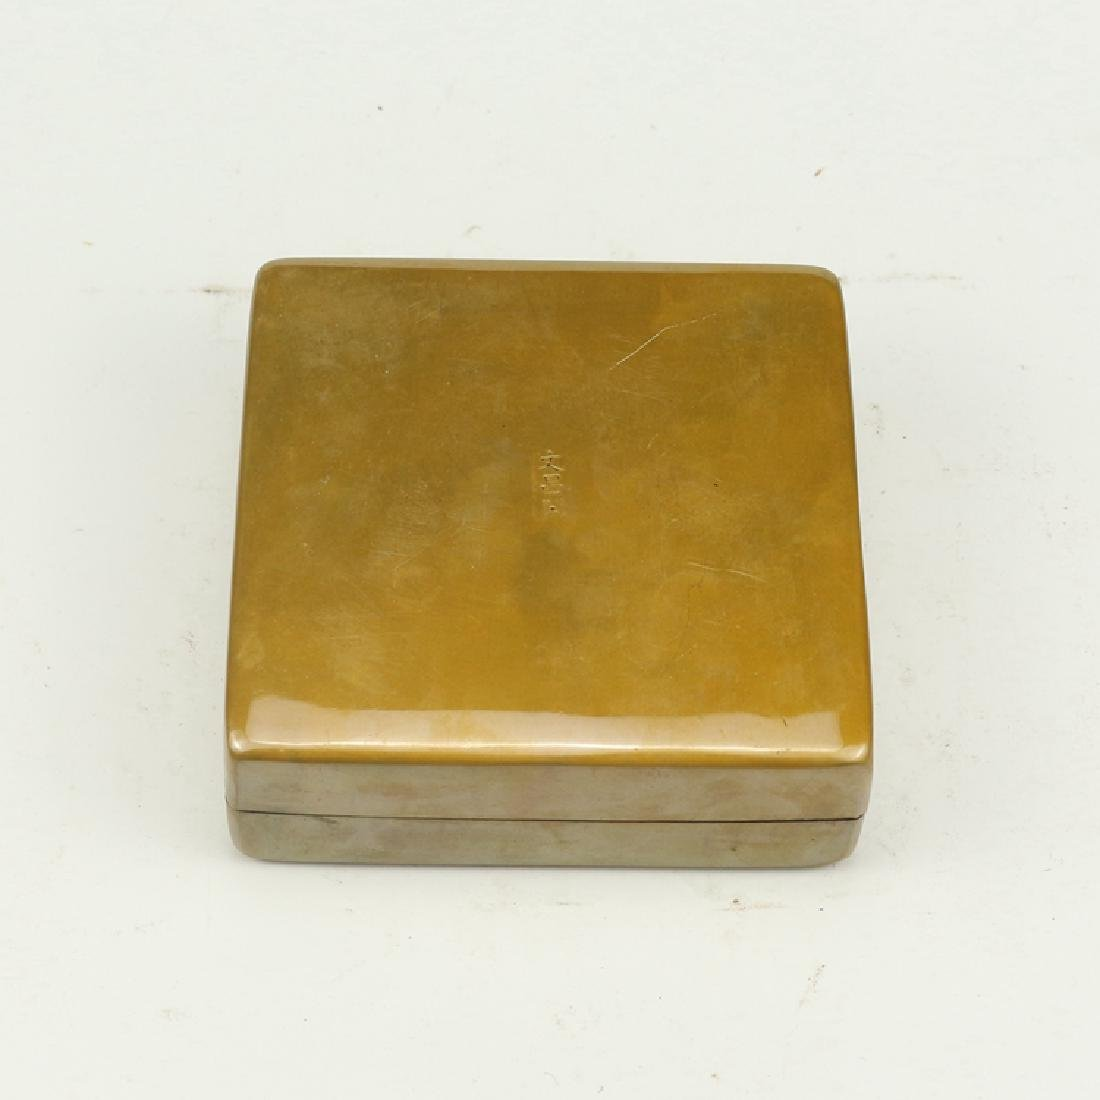 Chinese Antique Brass Ink Box - 5